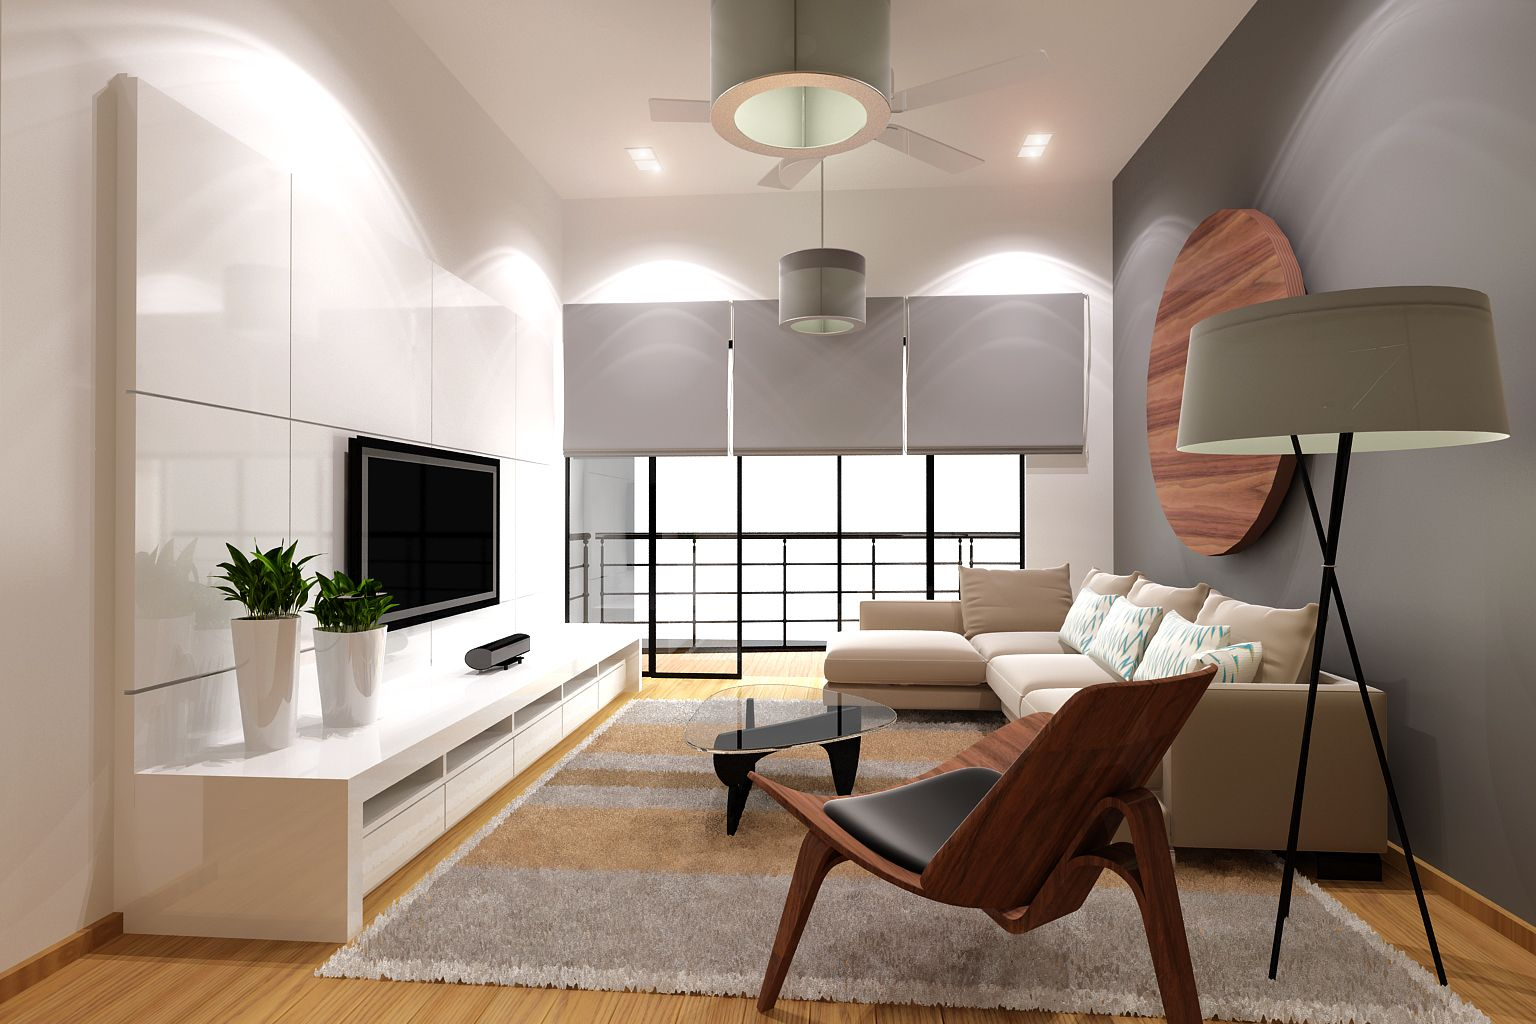 Best Interior Design Ideas Living Room Amazing Best Savings For Interior Design Ideas A Condo About Remodel Design Ideas